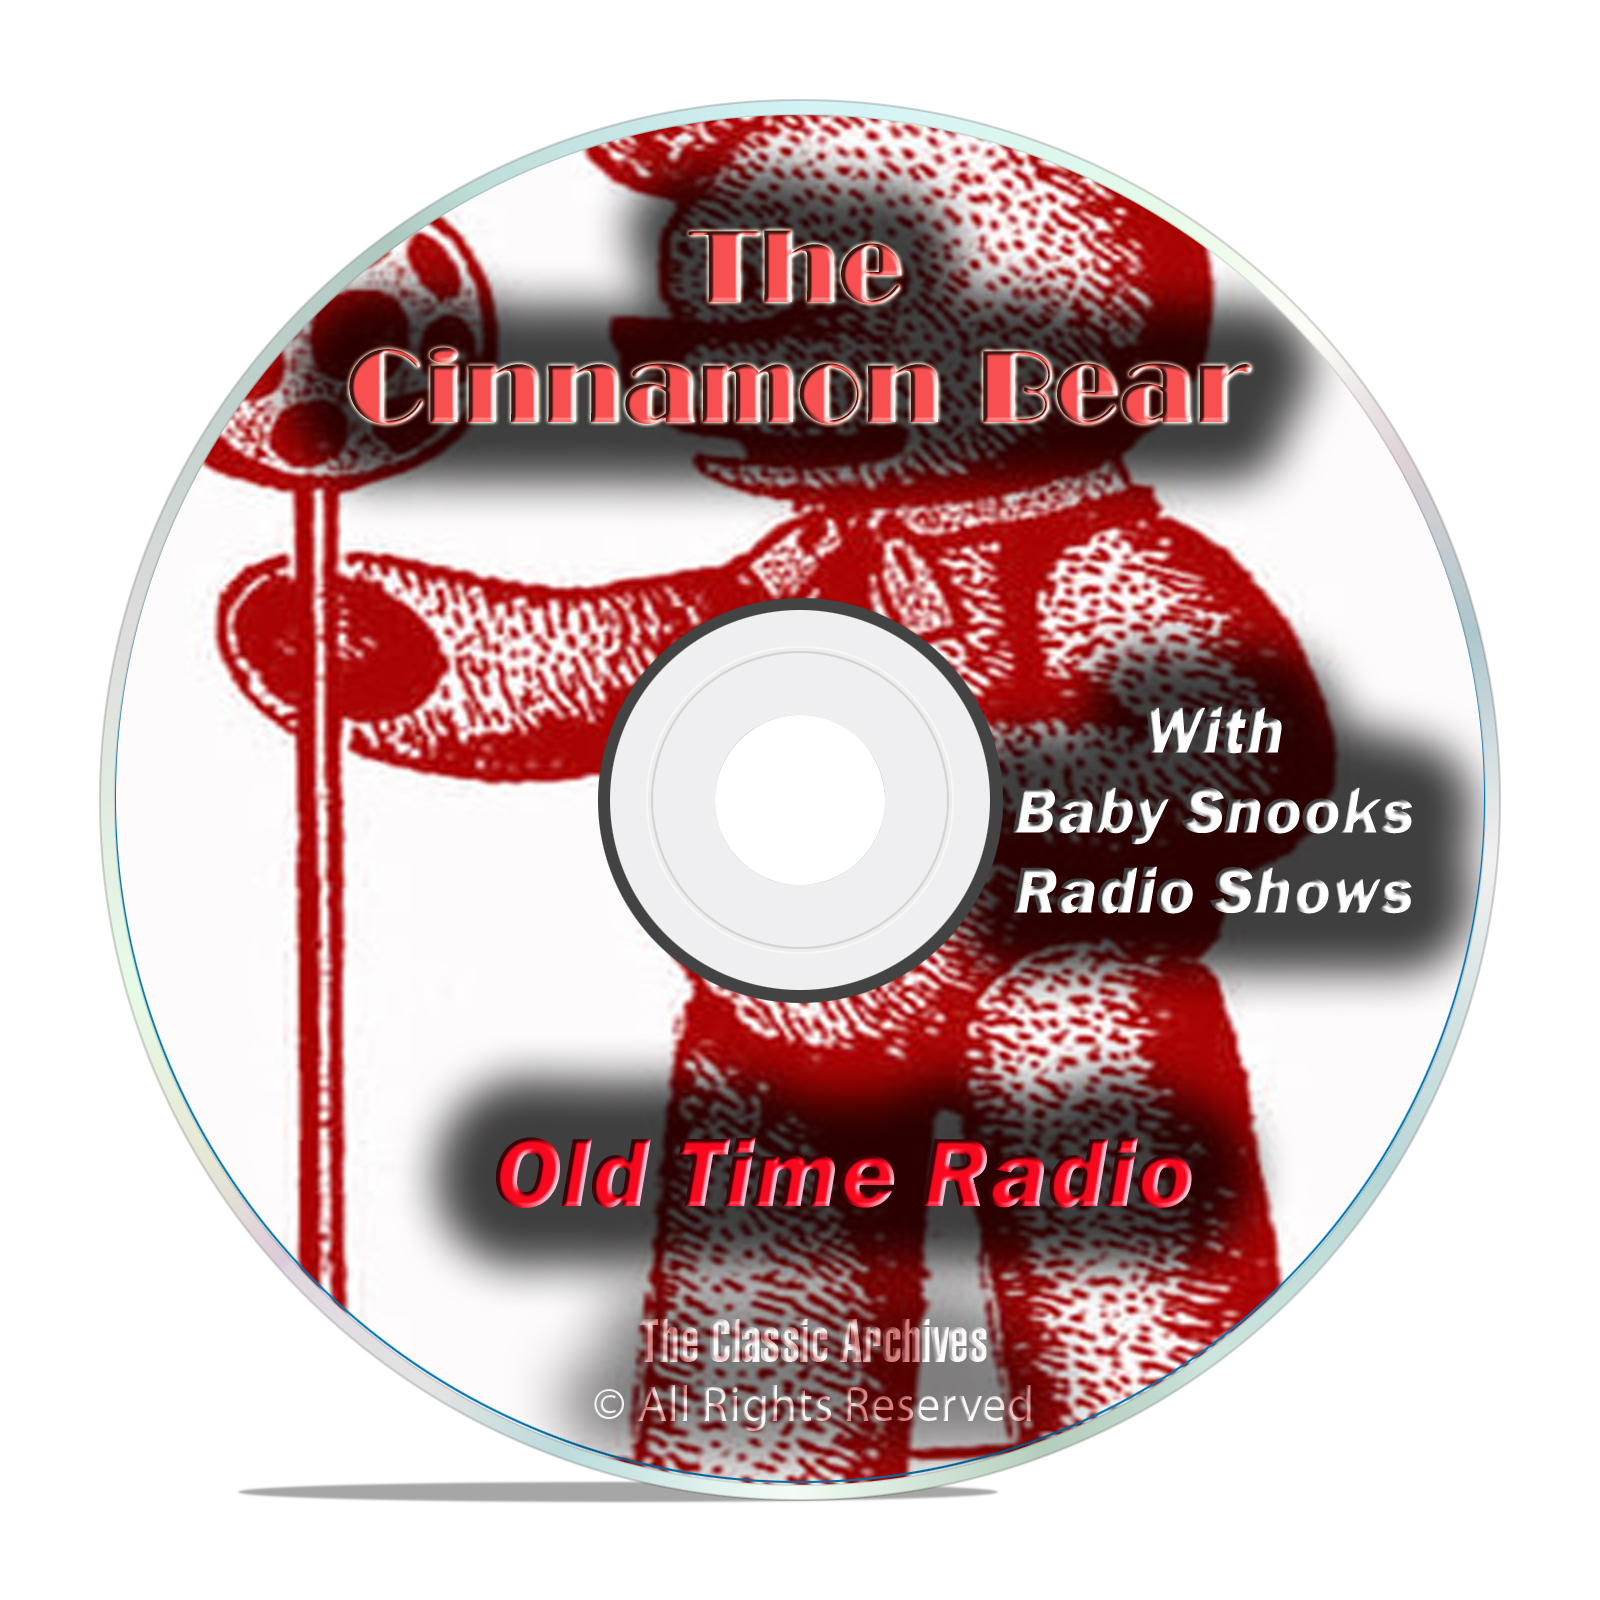 The Cinnamon Bear, 1,151 Old Time Radio Fiction Shows, OTR mp3 DVD